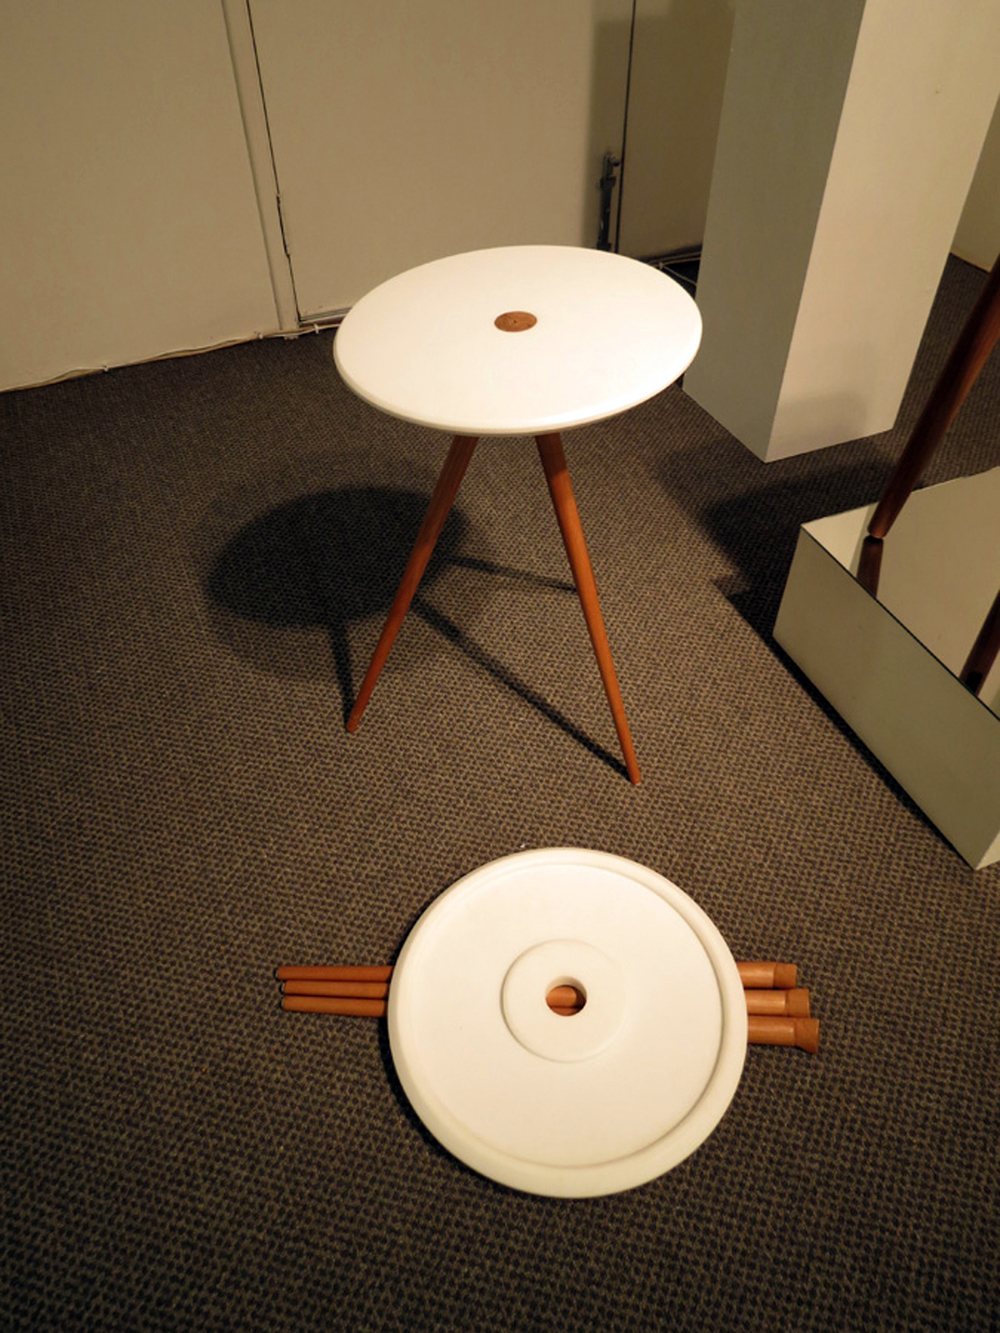 17.  .45,  Shannon Riddle, Corian, American Cherry table, $685